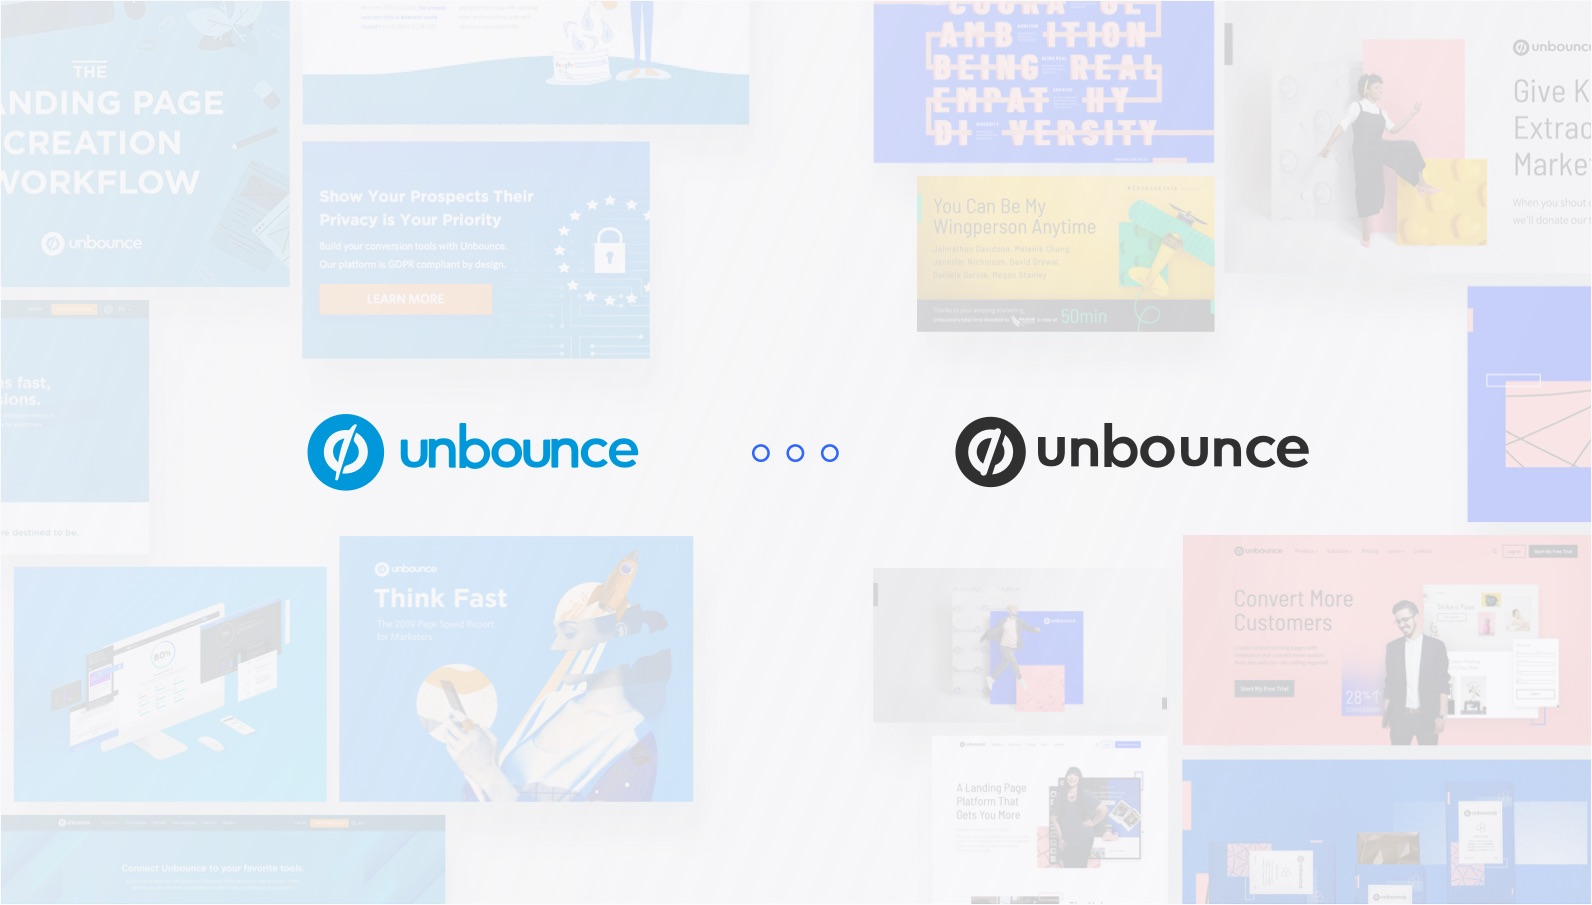 unbounce brand evolution process impression test visual exploration feature image